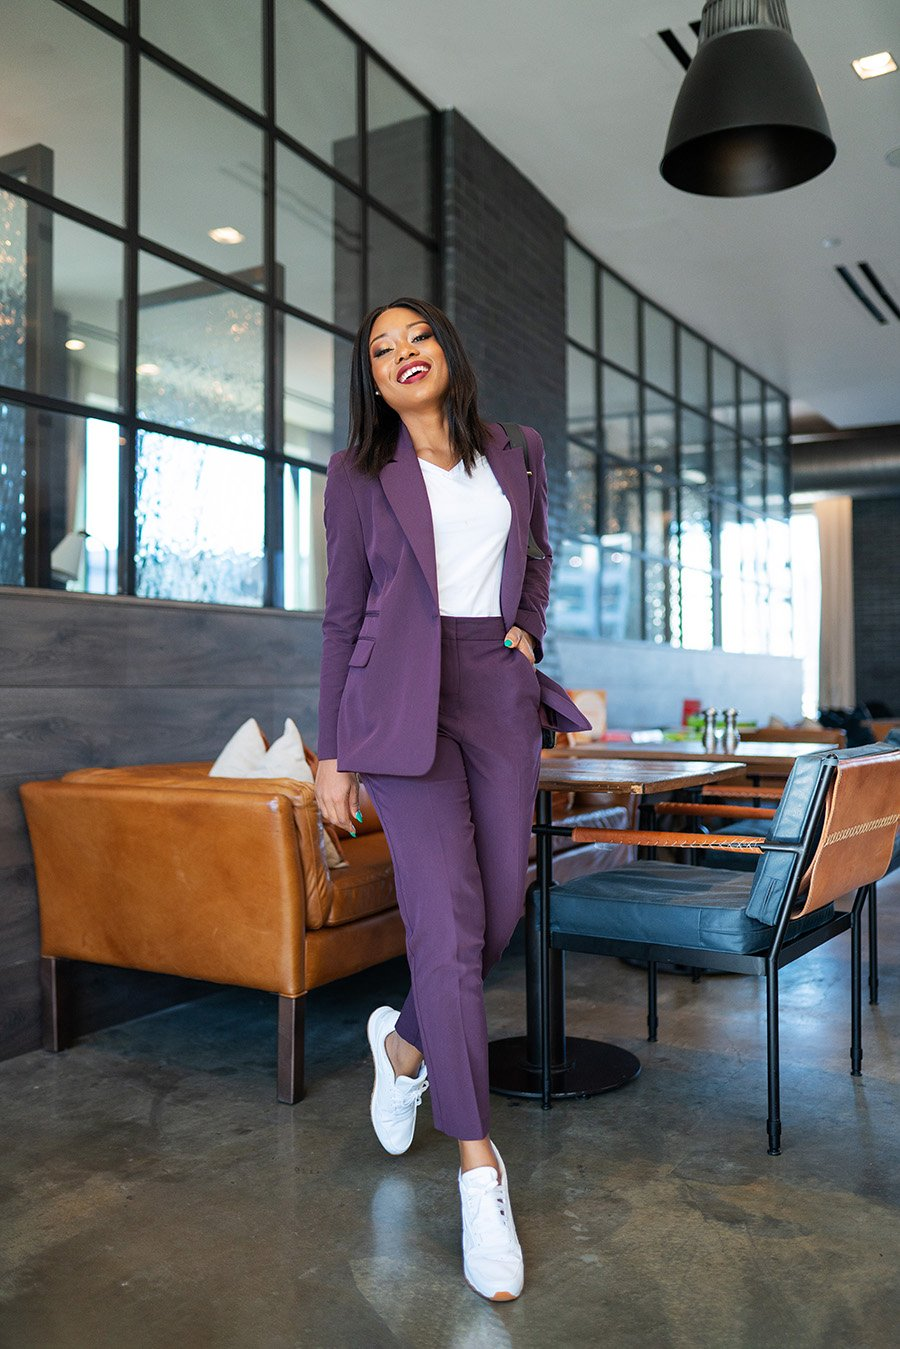 Stella-Adewunmi-of-jadore-fashion-share-how-to-style-suits-and-sneakers